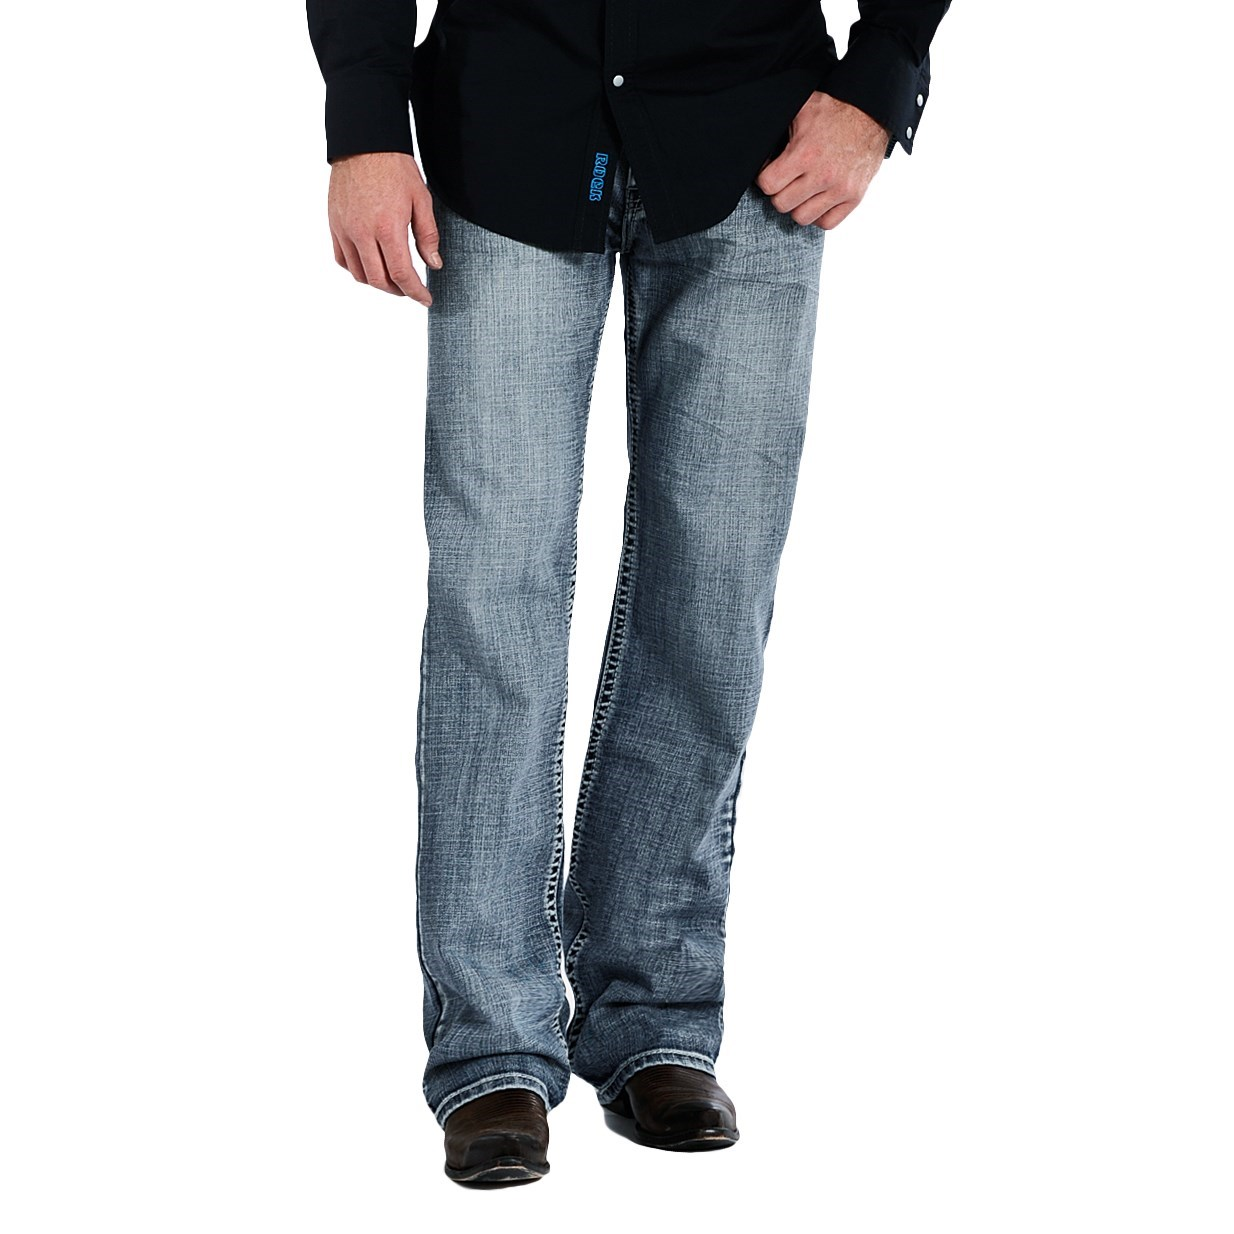 Rely on V.I.P Jeans For the Finest Stretchy Jeans for girls and woman looking to show their curves and bring out their finest shape. A full line of Ripped, Bootcut, low rise, high waisted or boyfriend.